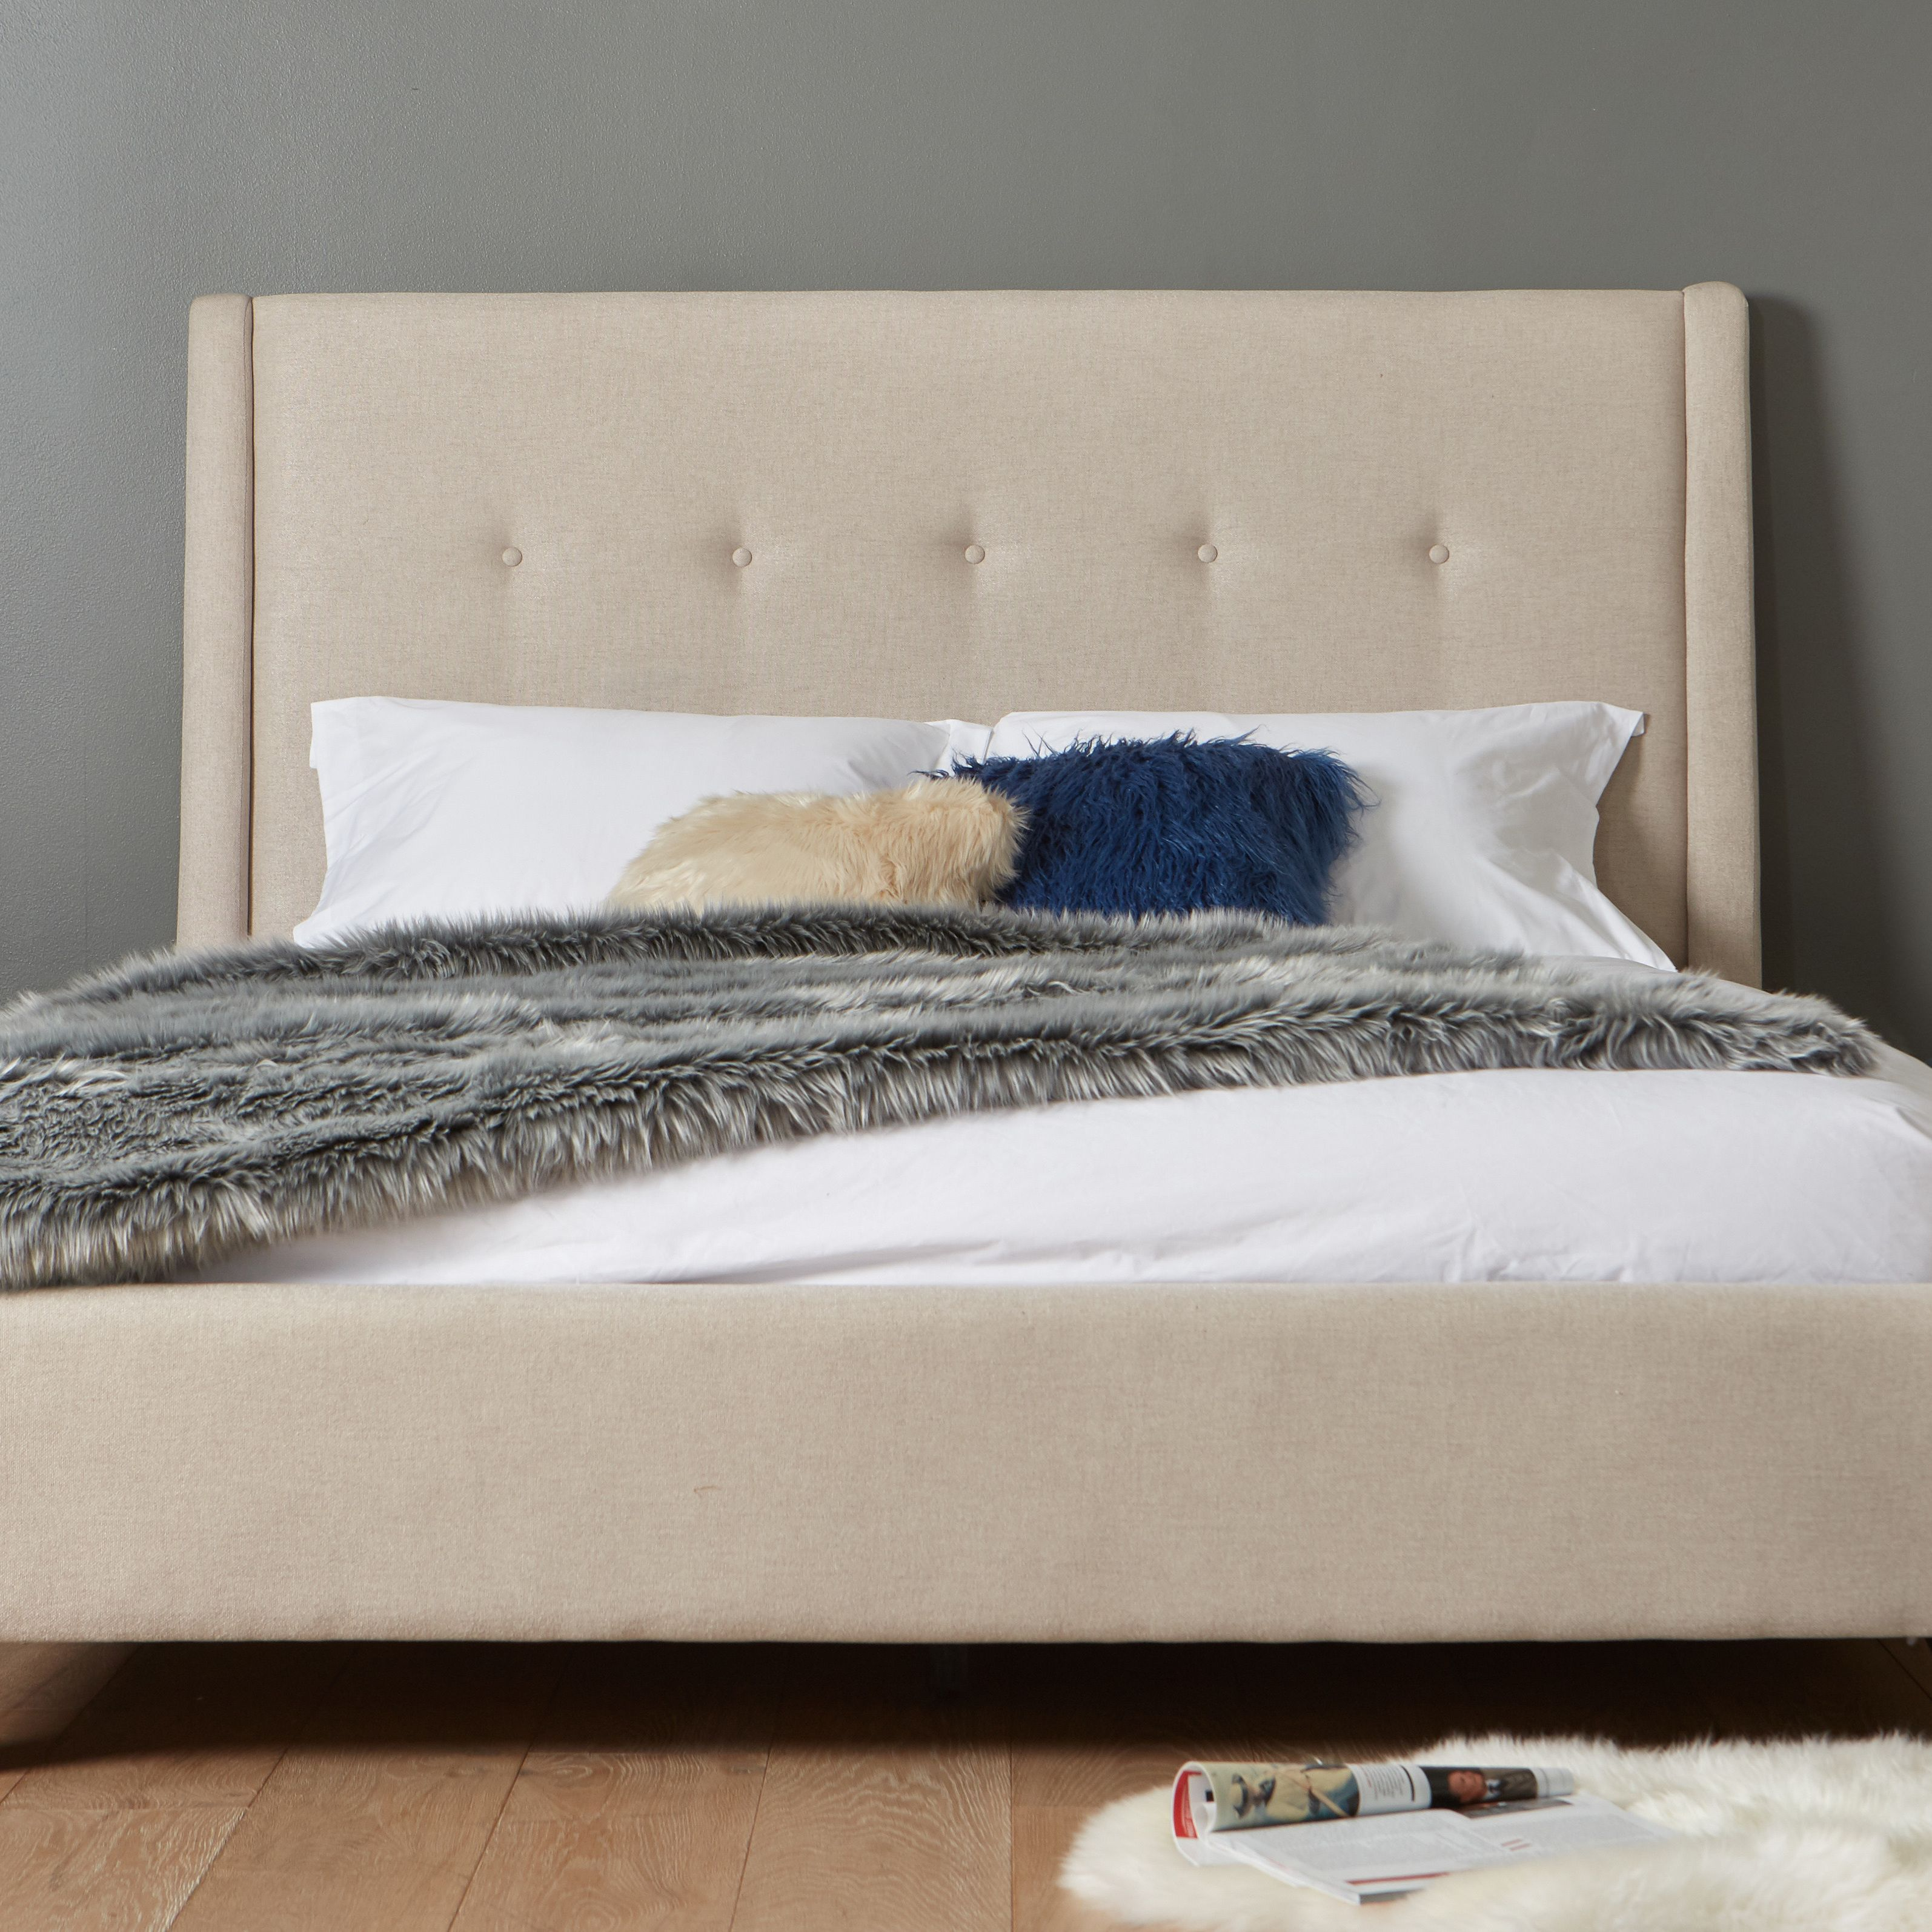 Search Results In 2020 Upholstered Beds Upholstered Bed Frame Bed